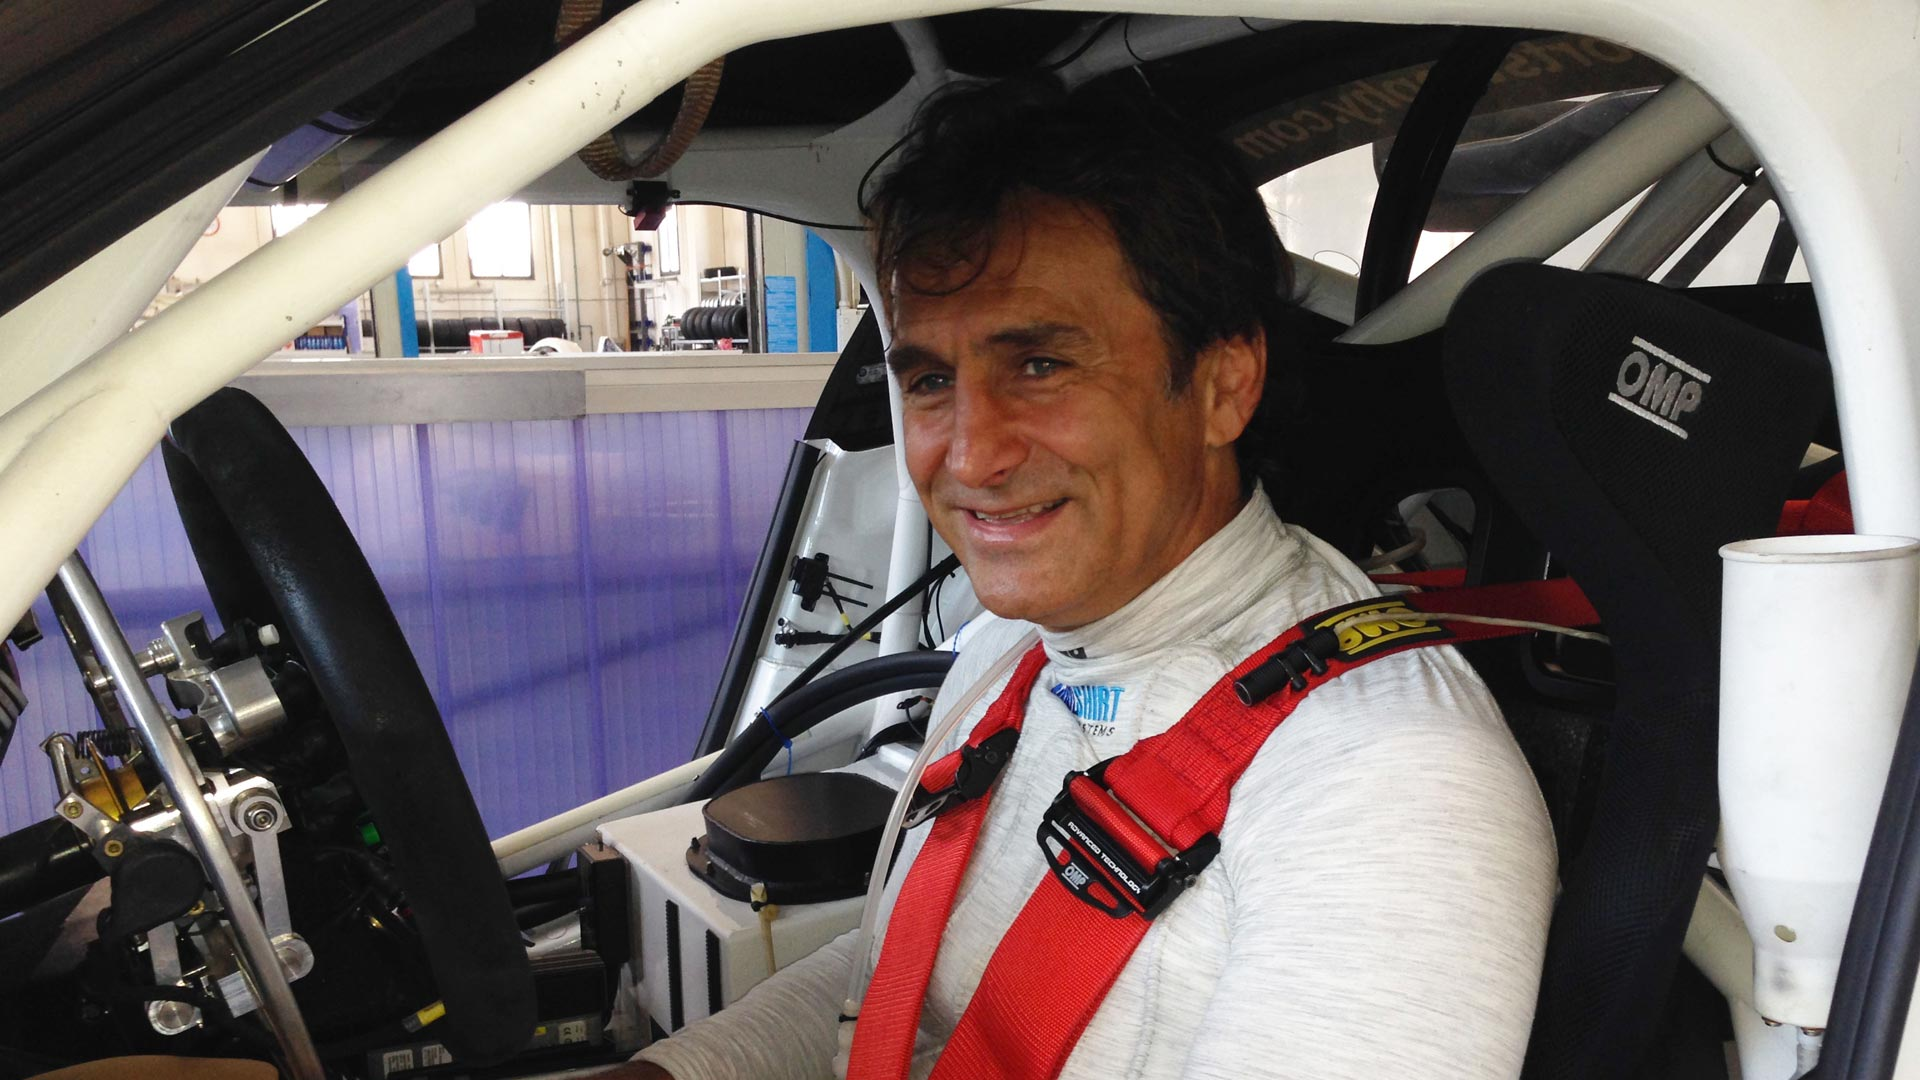 Alex Zanardi presents